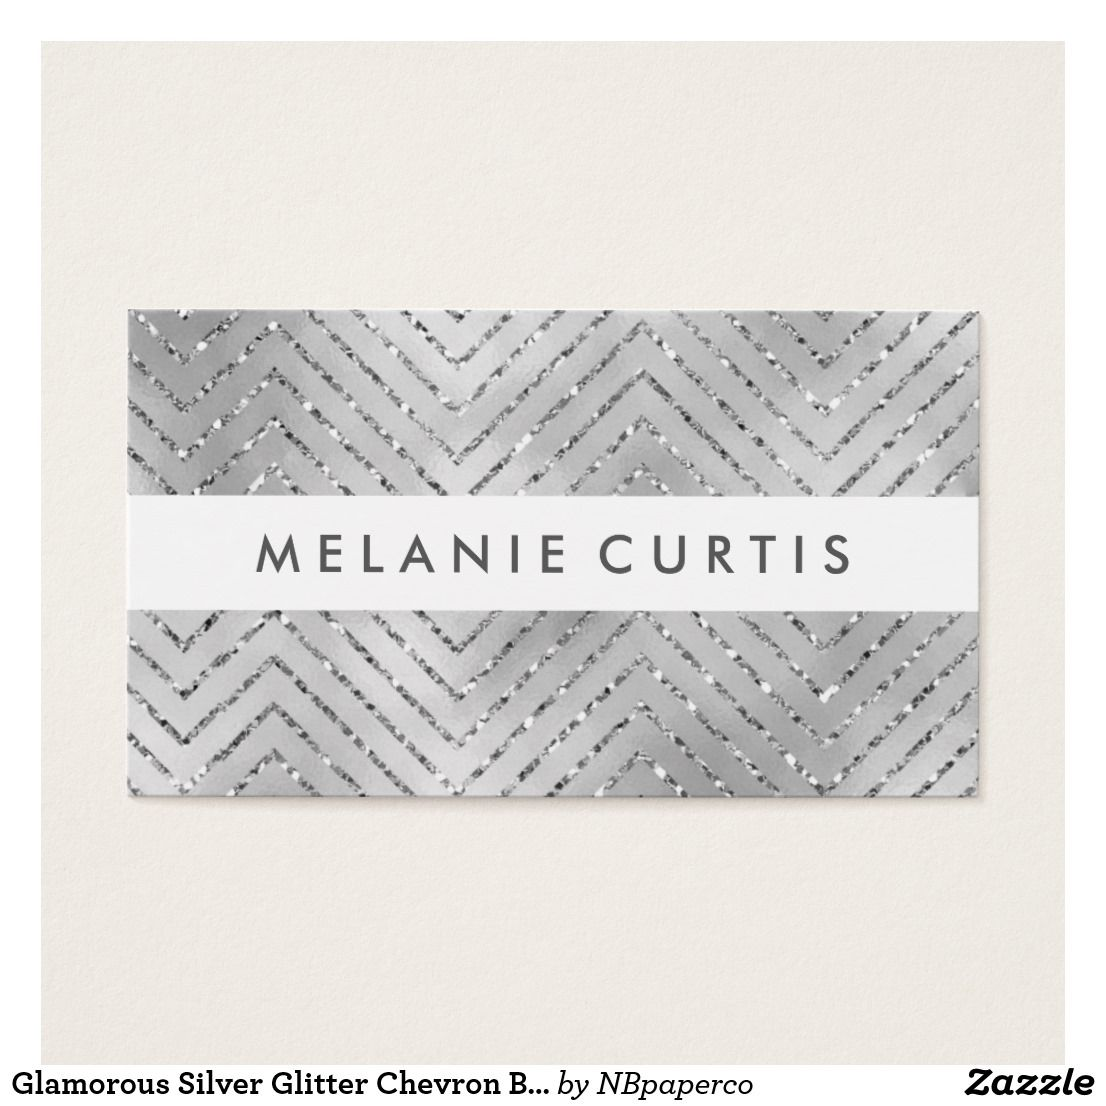 Glamorous Silver Glitter Chevron Business Business Card